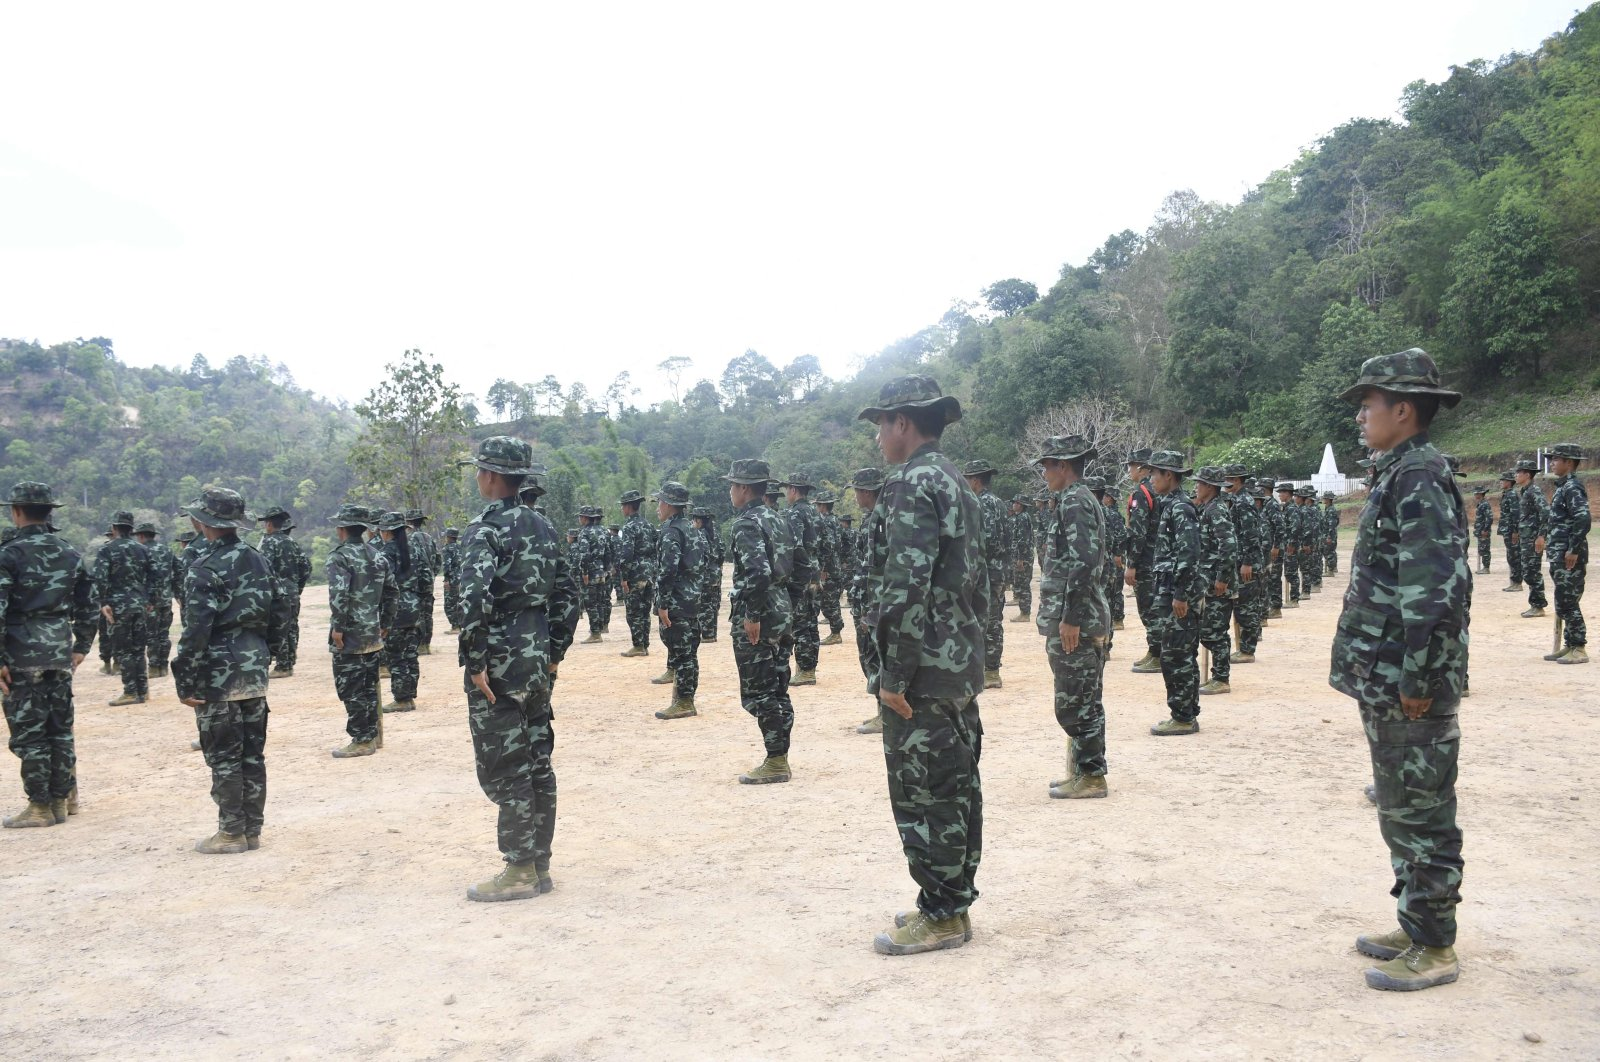 This handout photo from the local media group Kantarawaddy Times taken on May 10, 2021, and released on June 4 shows military training conducted by the Karenni National Progressive Party (KNPP) ethnic rebel group in Kayah State, Myanmar. (Kantarawaddy Times via AFP)